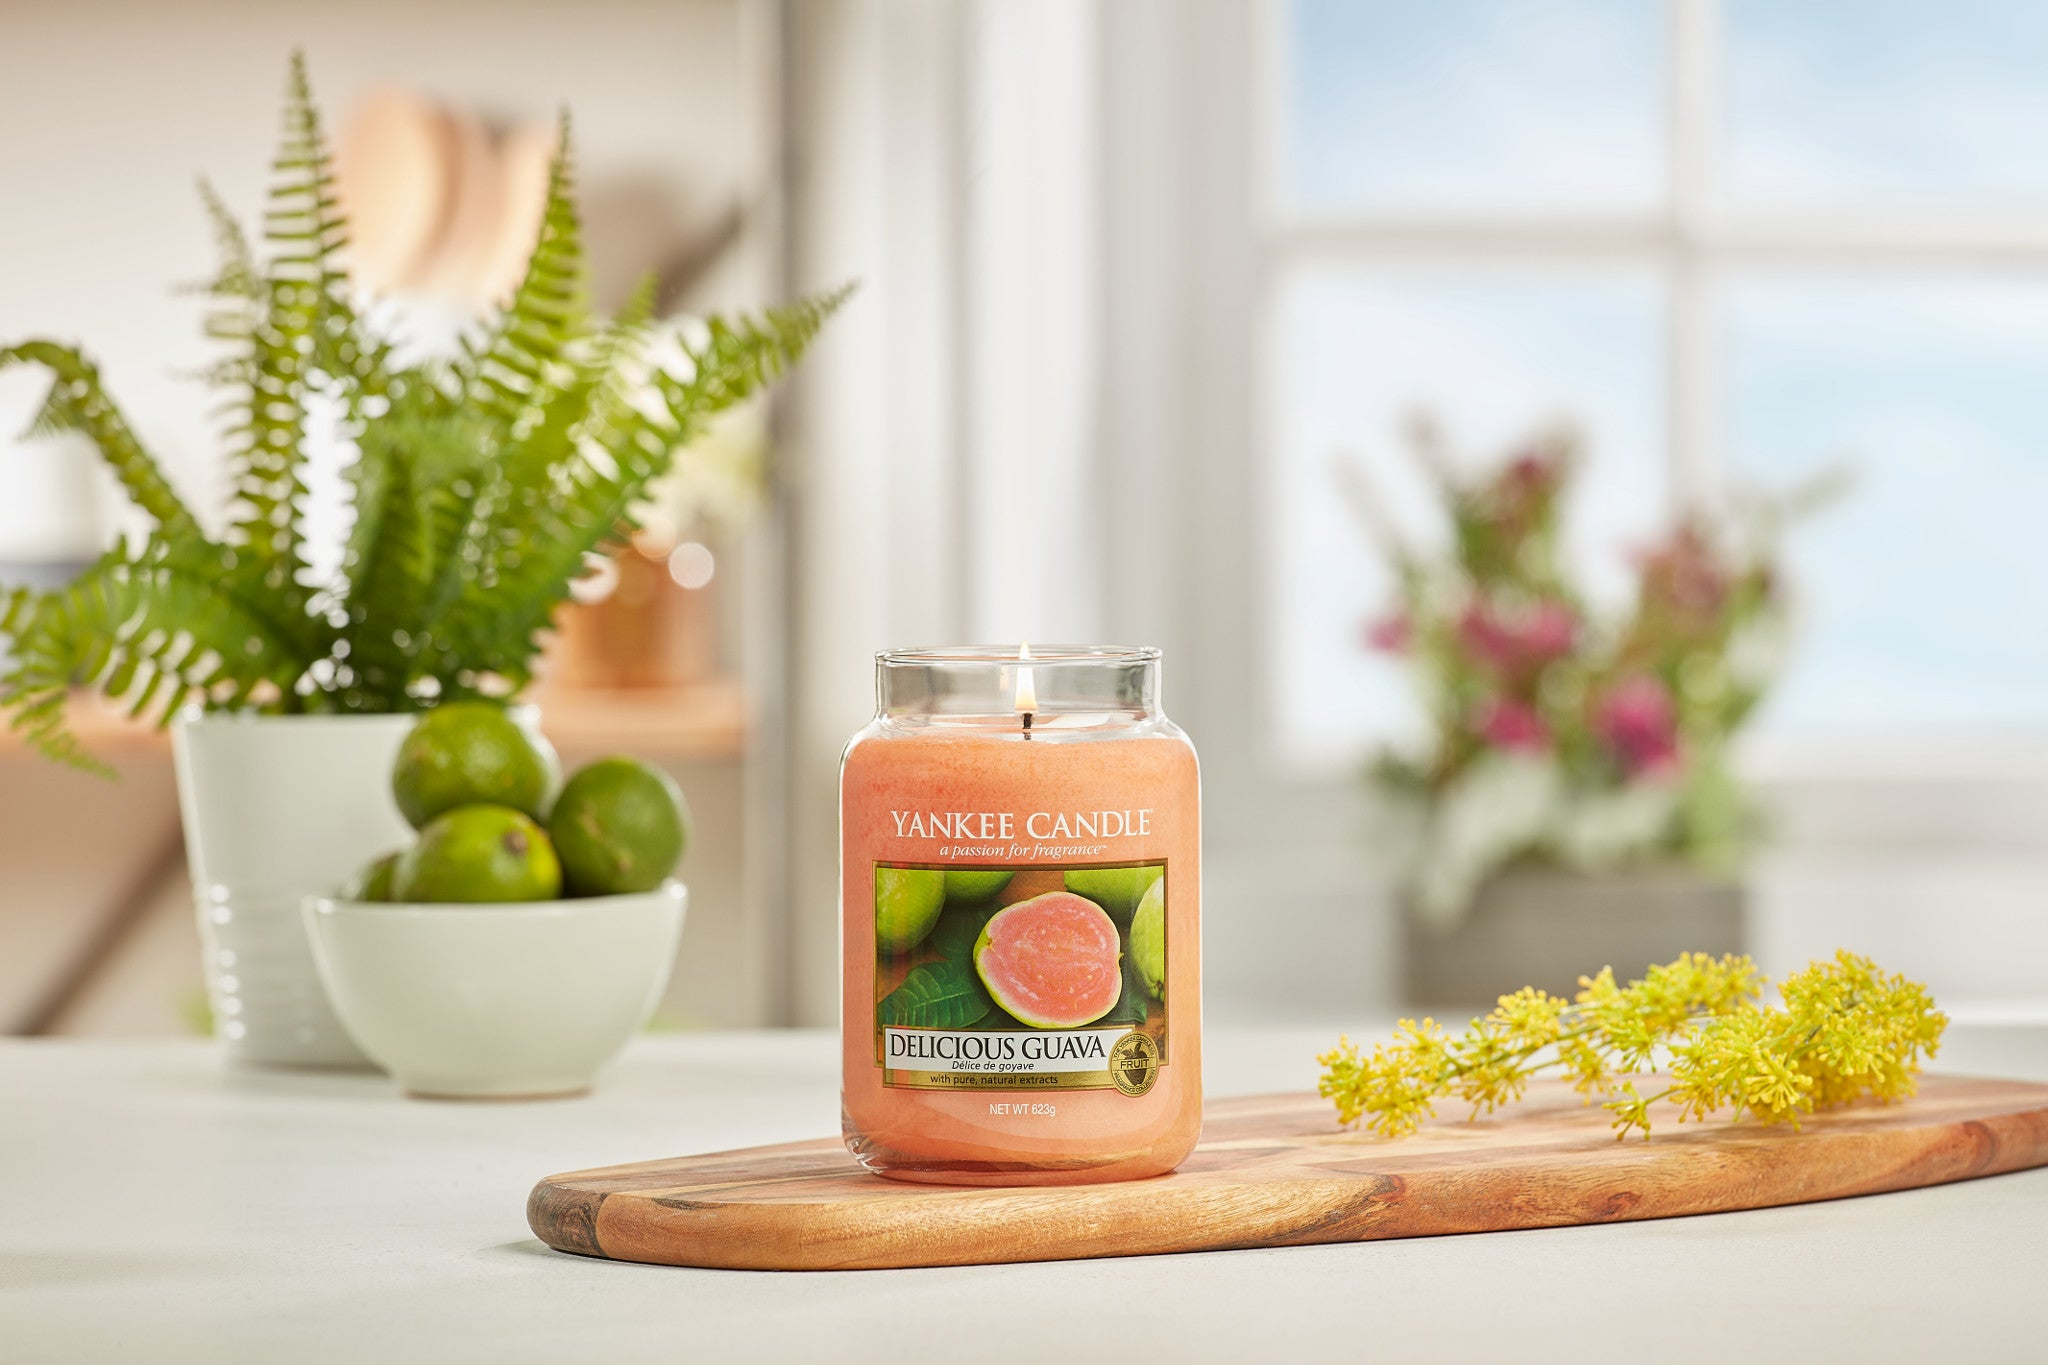 DELICIOUS GUAVA -Yankee Candle- Tart